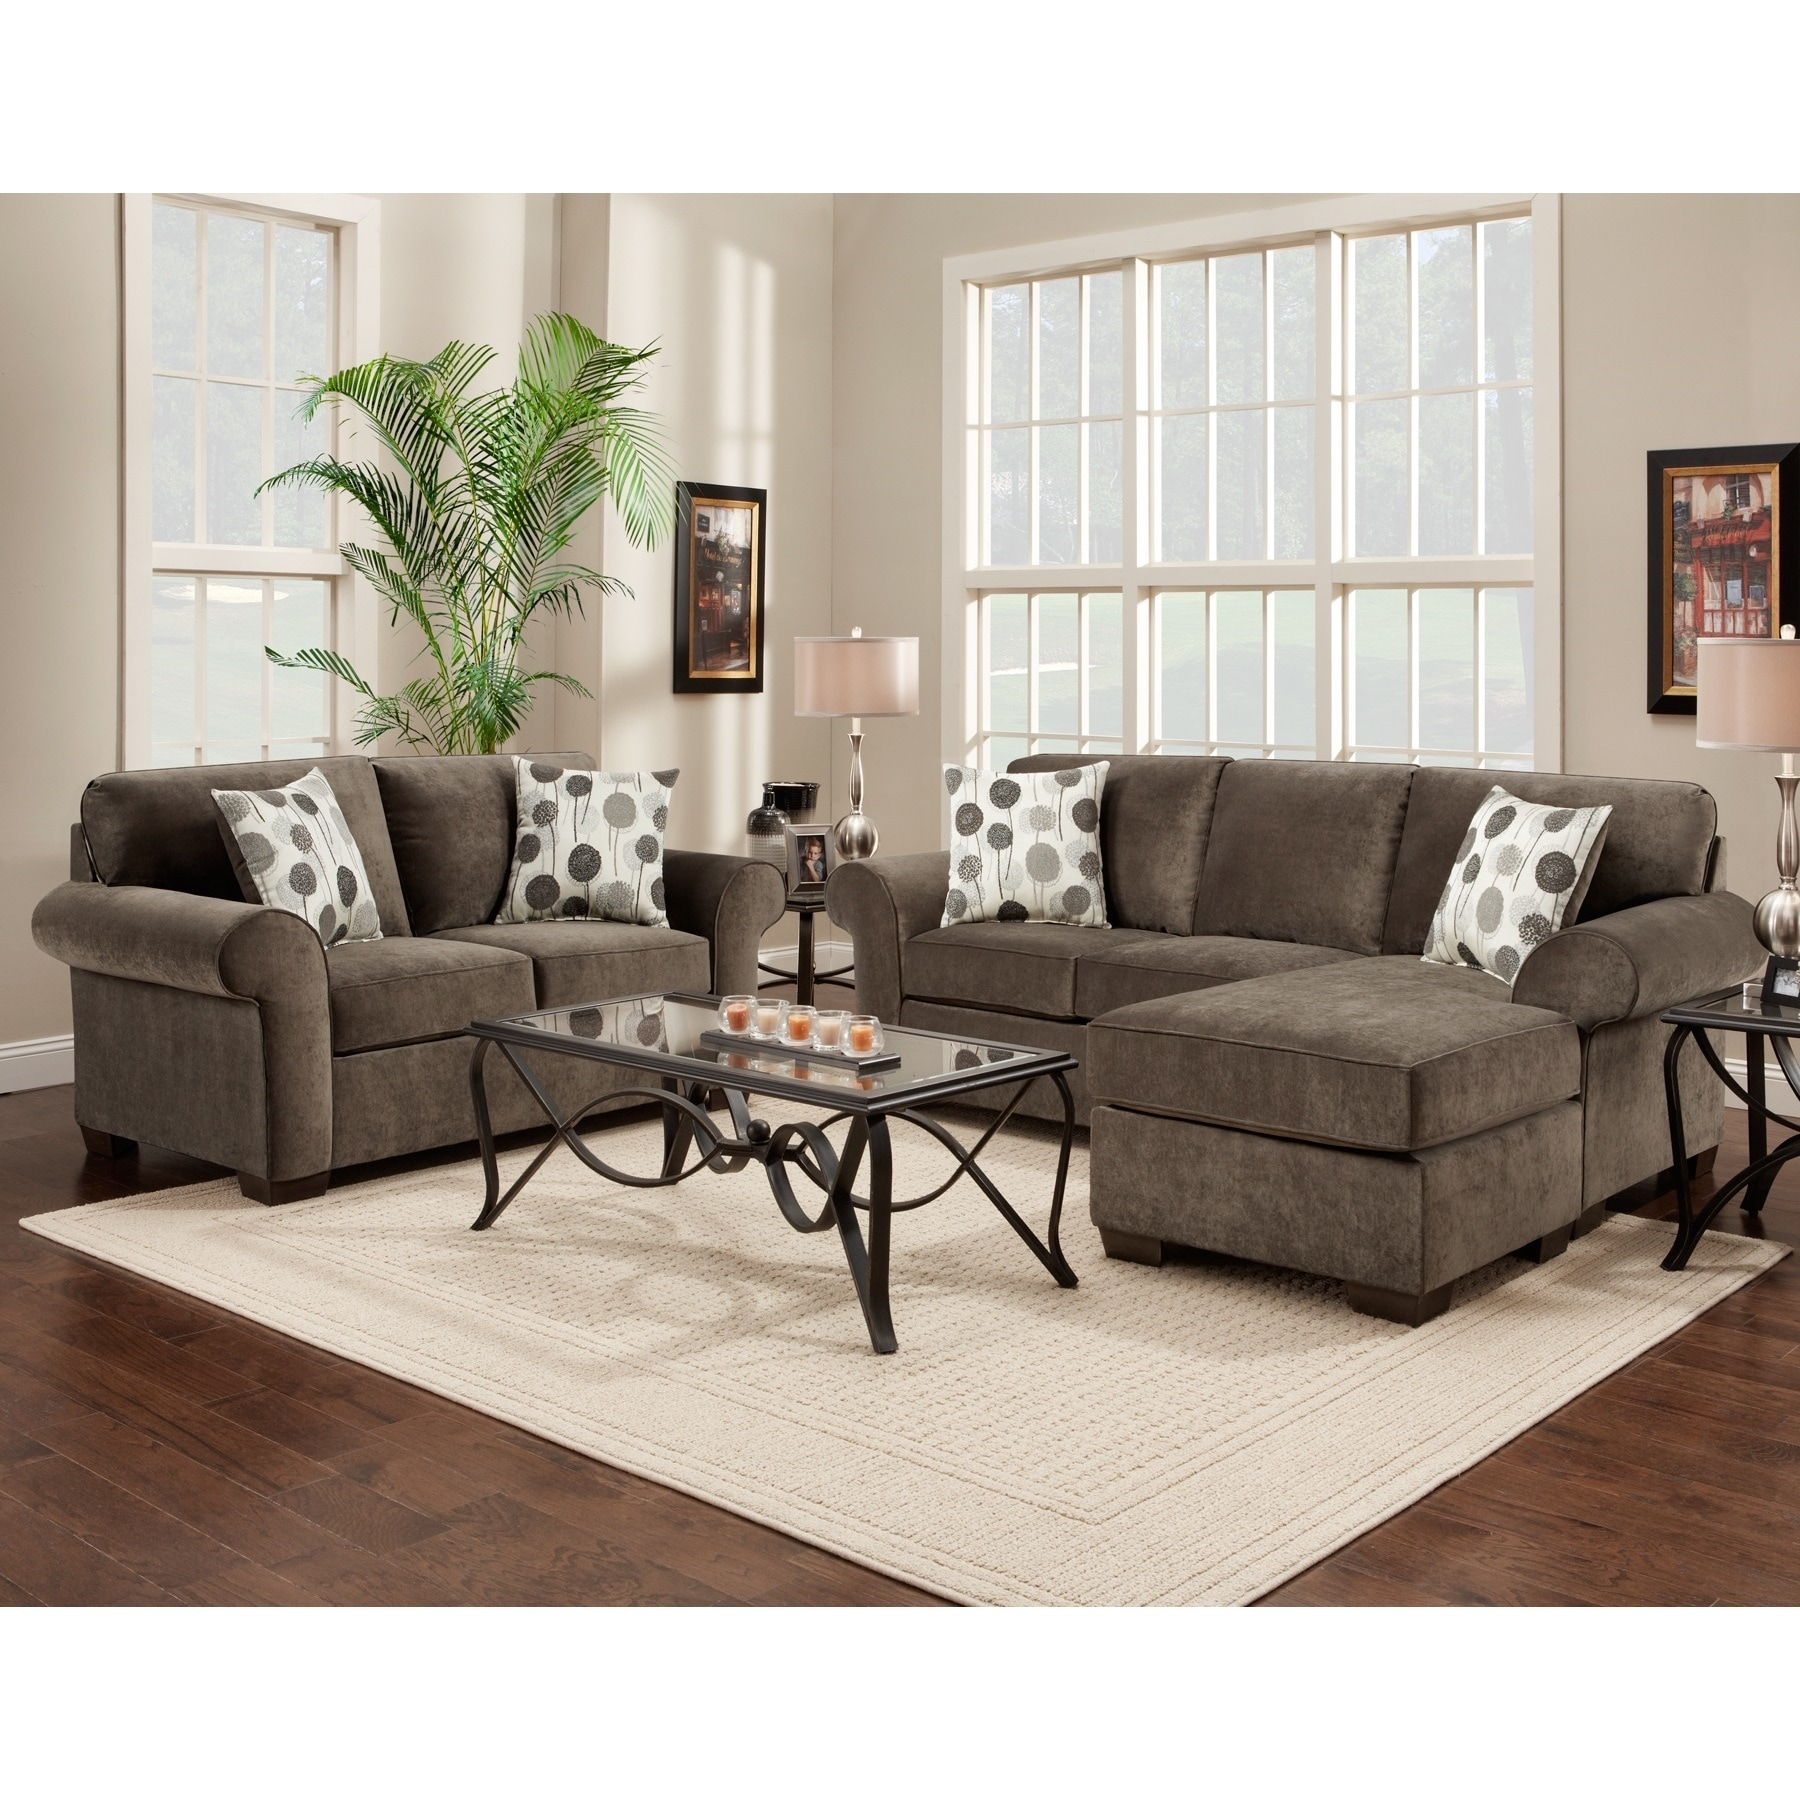 Fabric Sectional Sofa And Loveseat Set